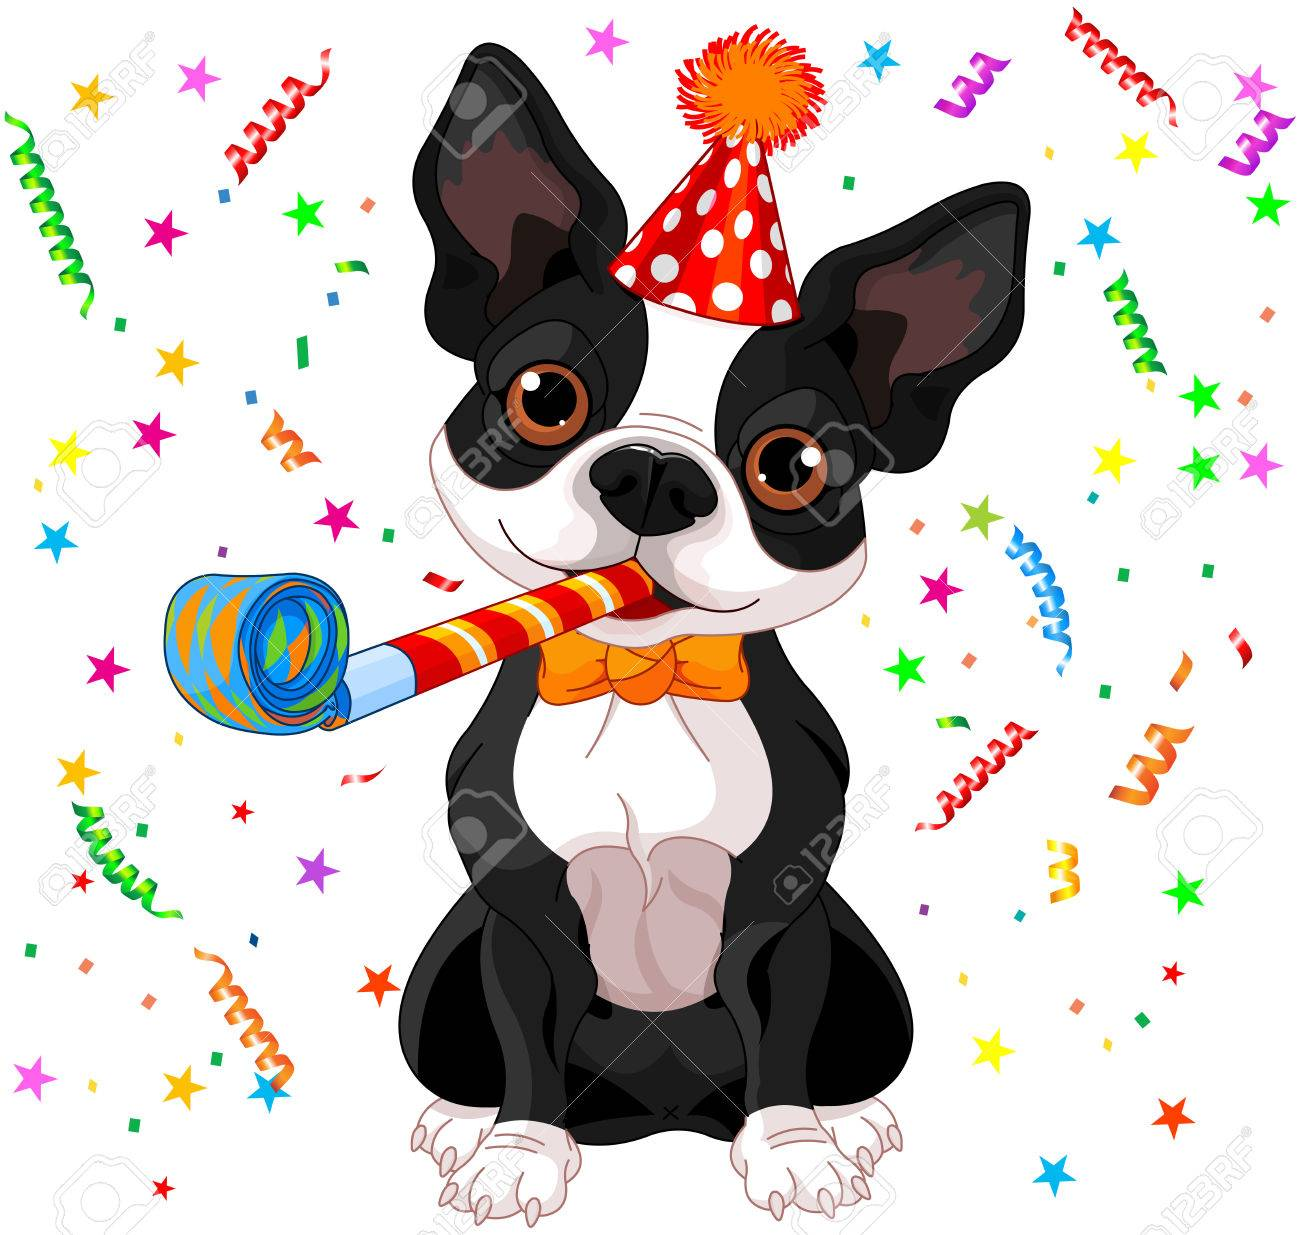 Le champion du running contacts 35588778-illustration-of-cute-boston-terrier-celebrating